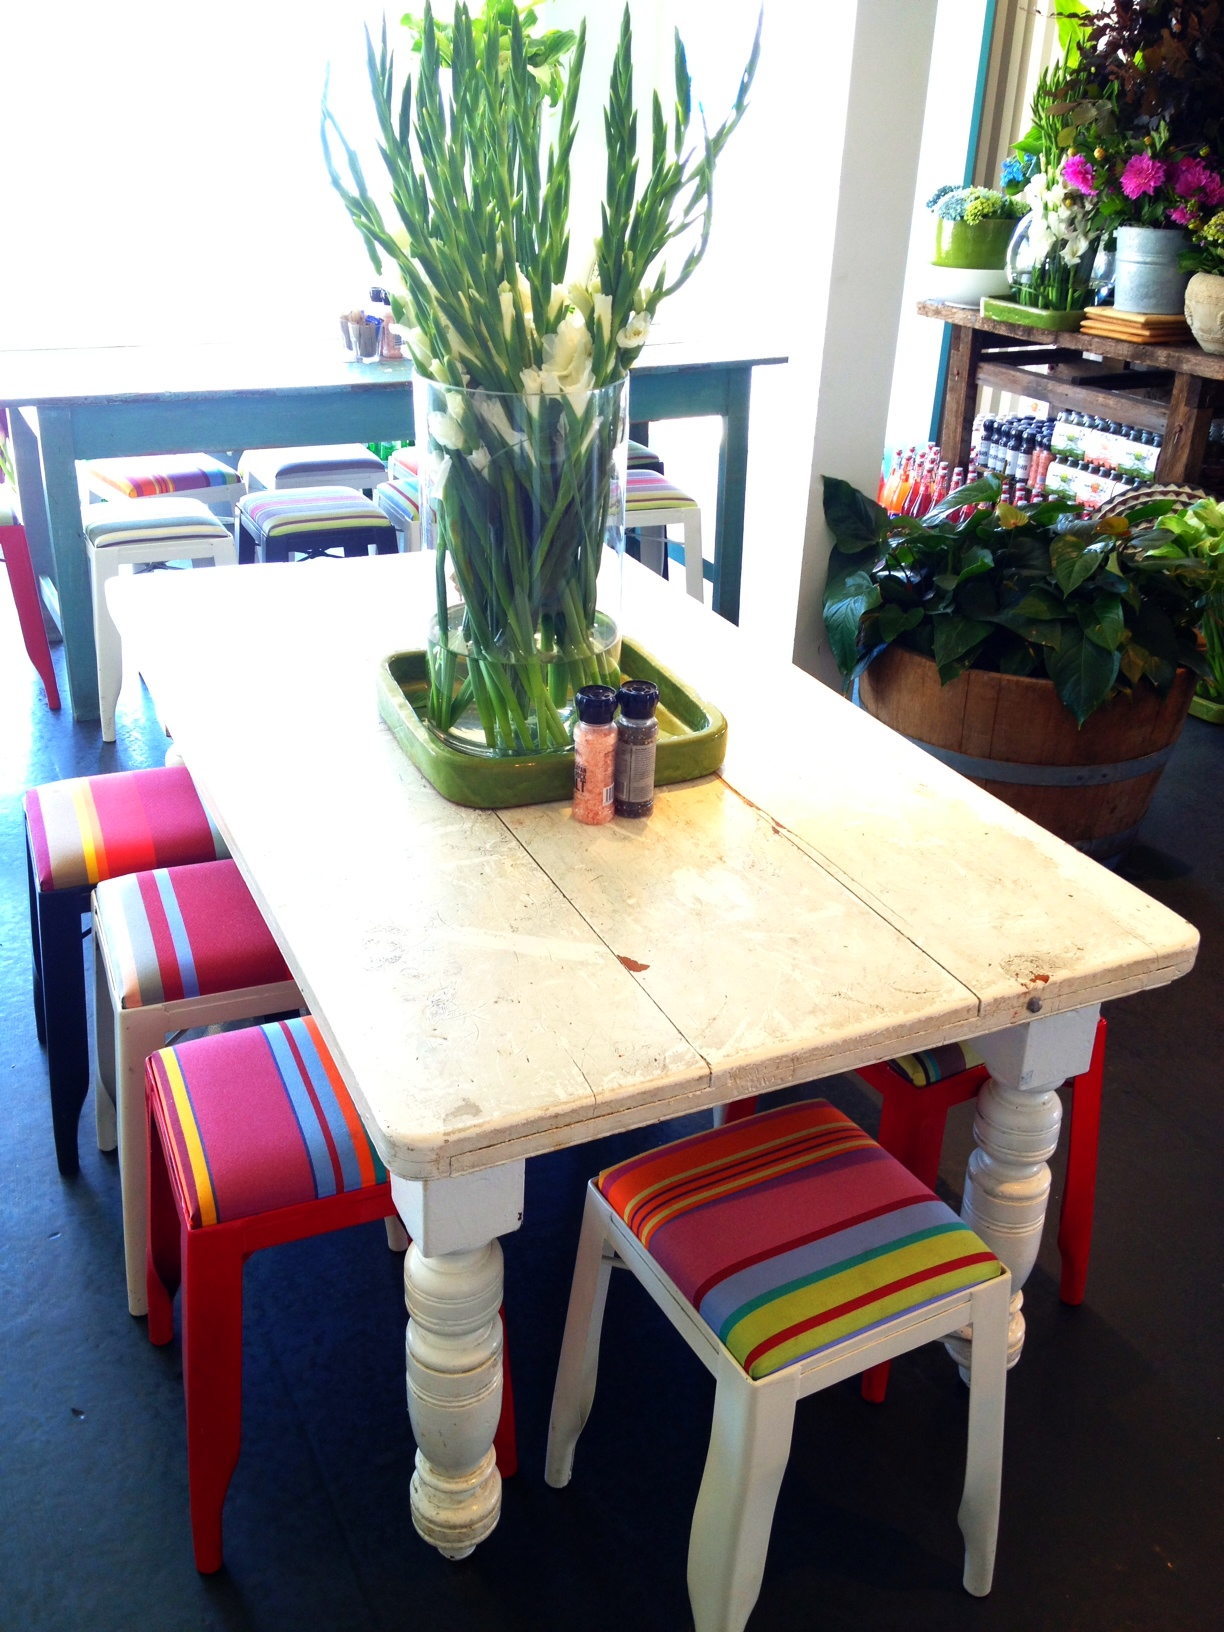 beach house furniture sydney. fresh flowers colourful chairs and white wooden rustic tables u2013 the perfect beach cottage dcor house furniture sydney